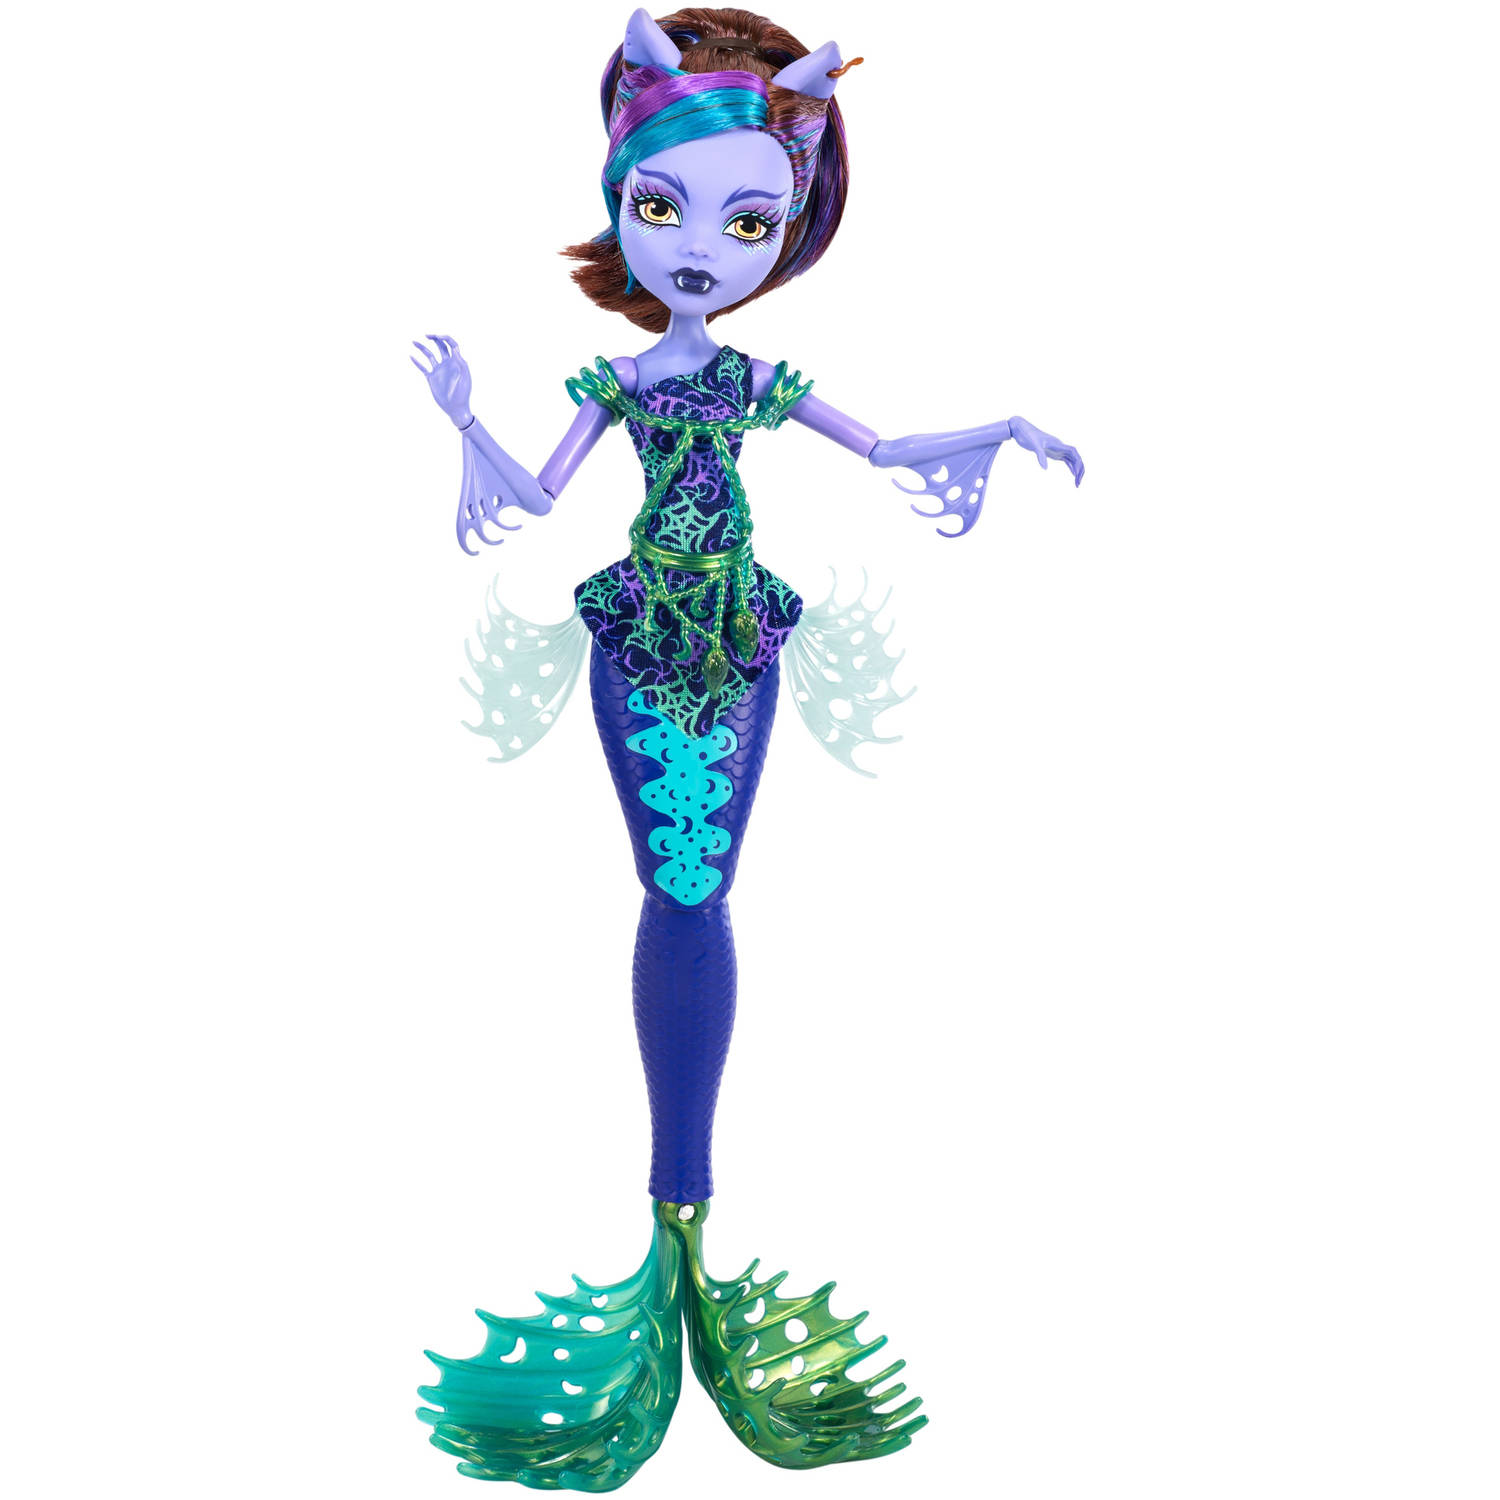 Monster High Great Scarrier Reef Glowsome Ghoulfish Clawdeen Wolf Doll